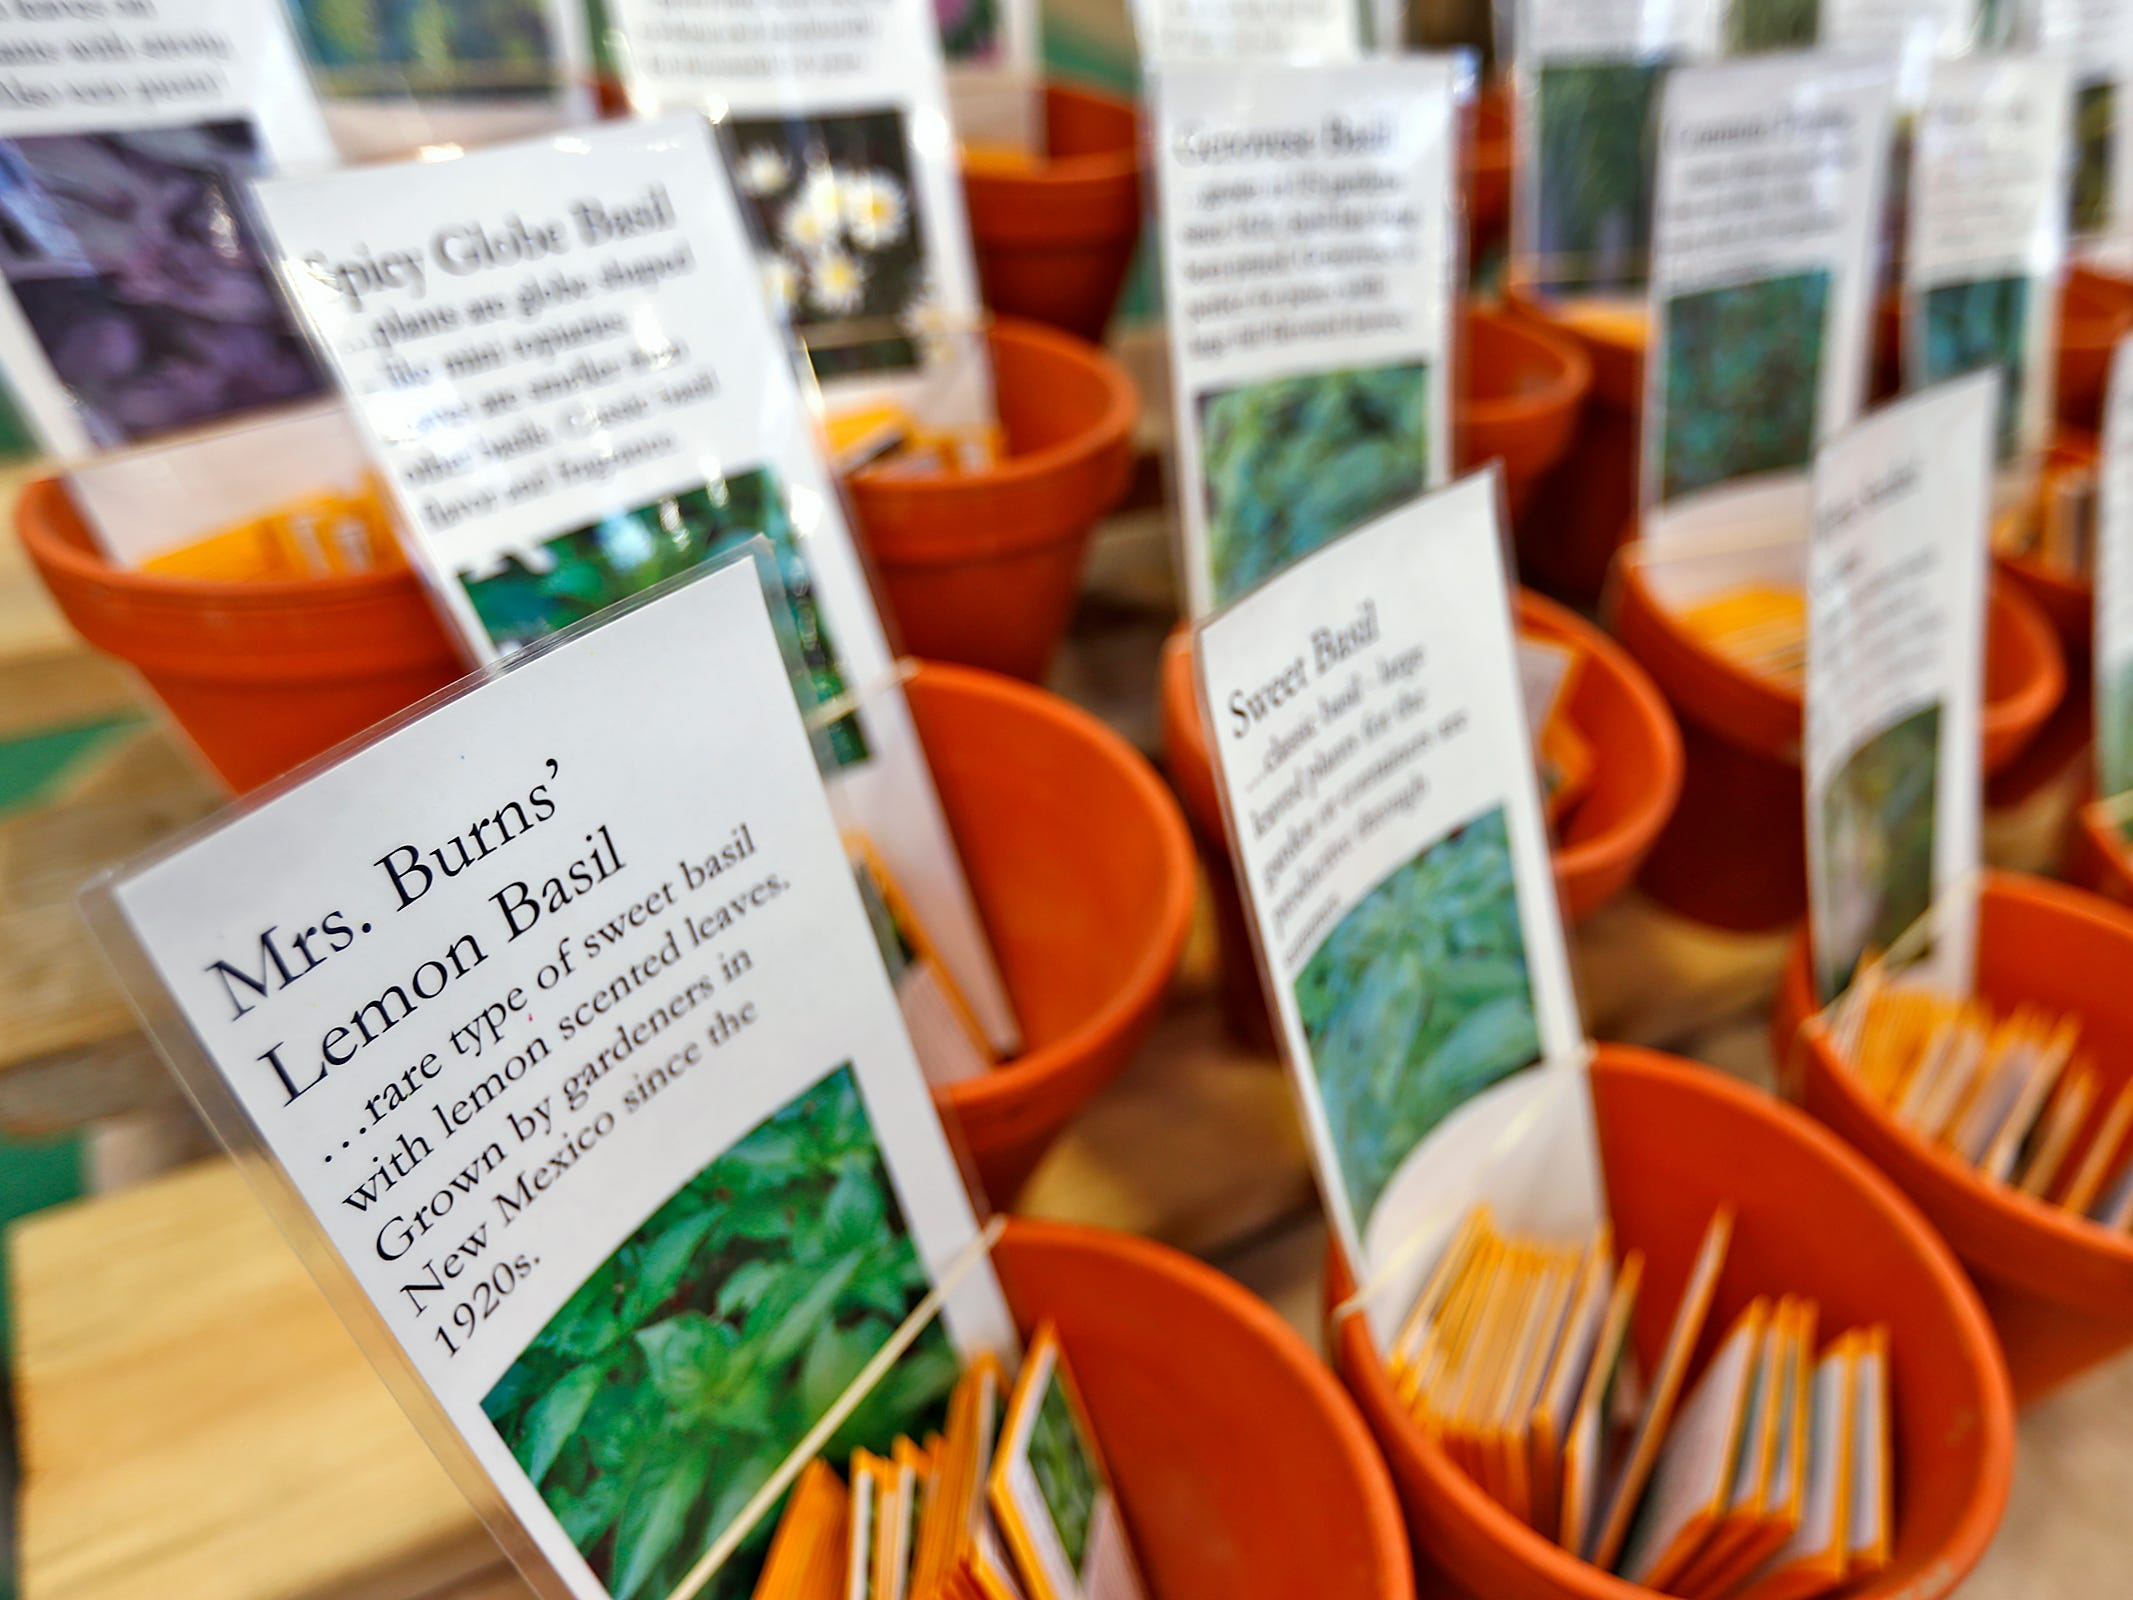 Heirloom and Vegetable seeds are for sale at the Circa Plants booth at the Indiana Flower + Patio Show, at the Indiana State Fairgrounds, Sunday, March 10, 2019.